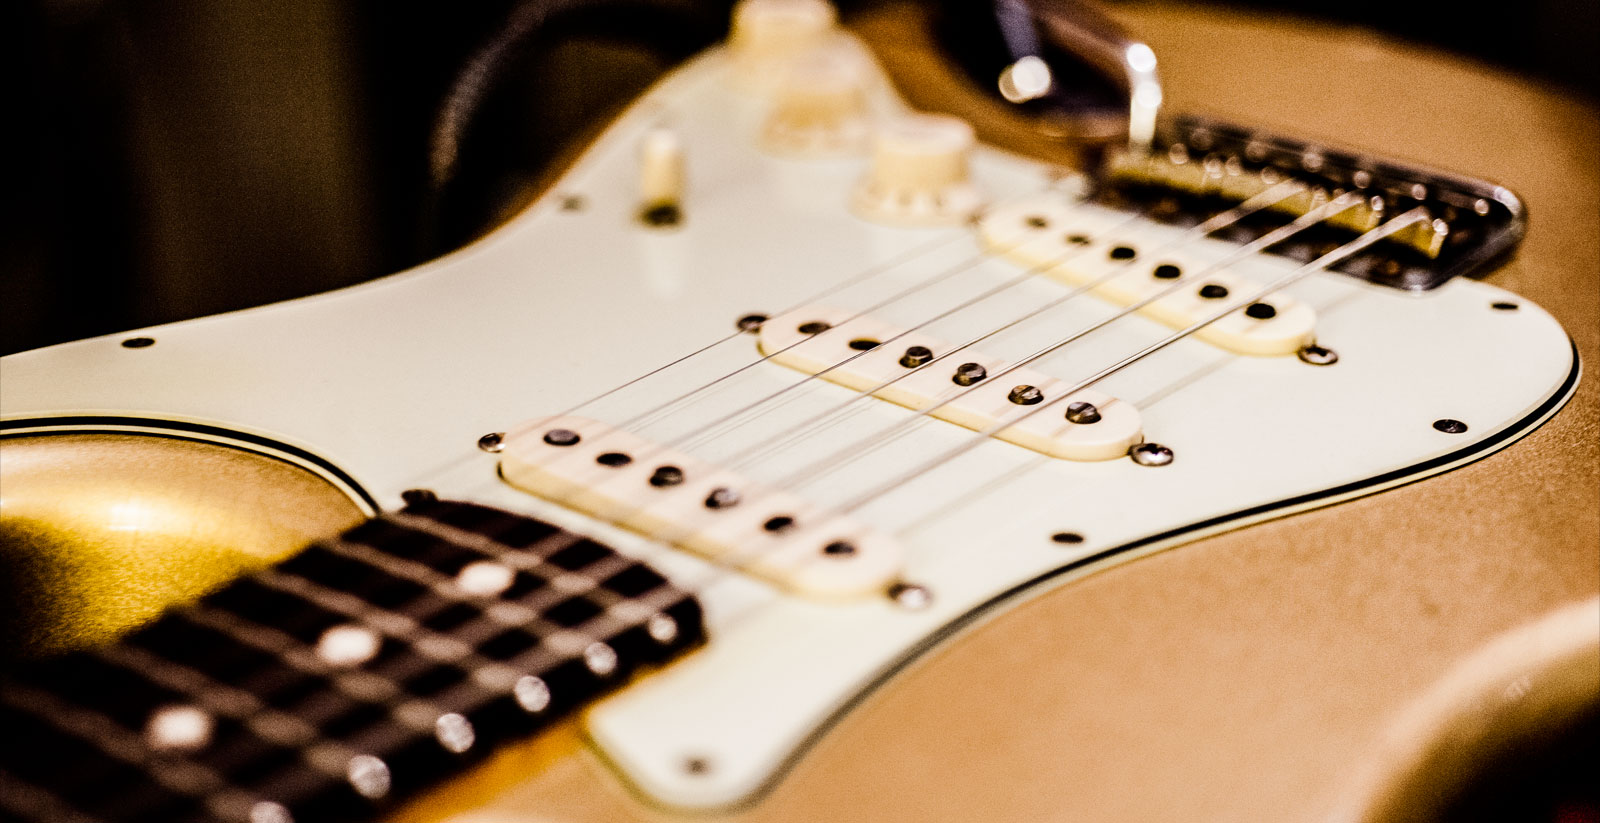 Golden Stratocaster - The Guitar School